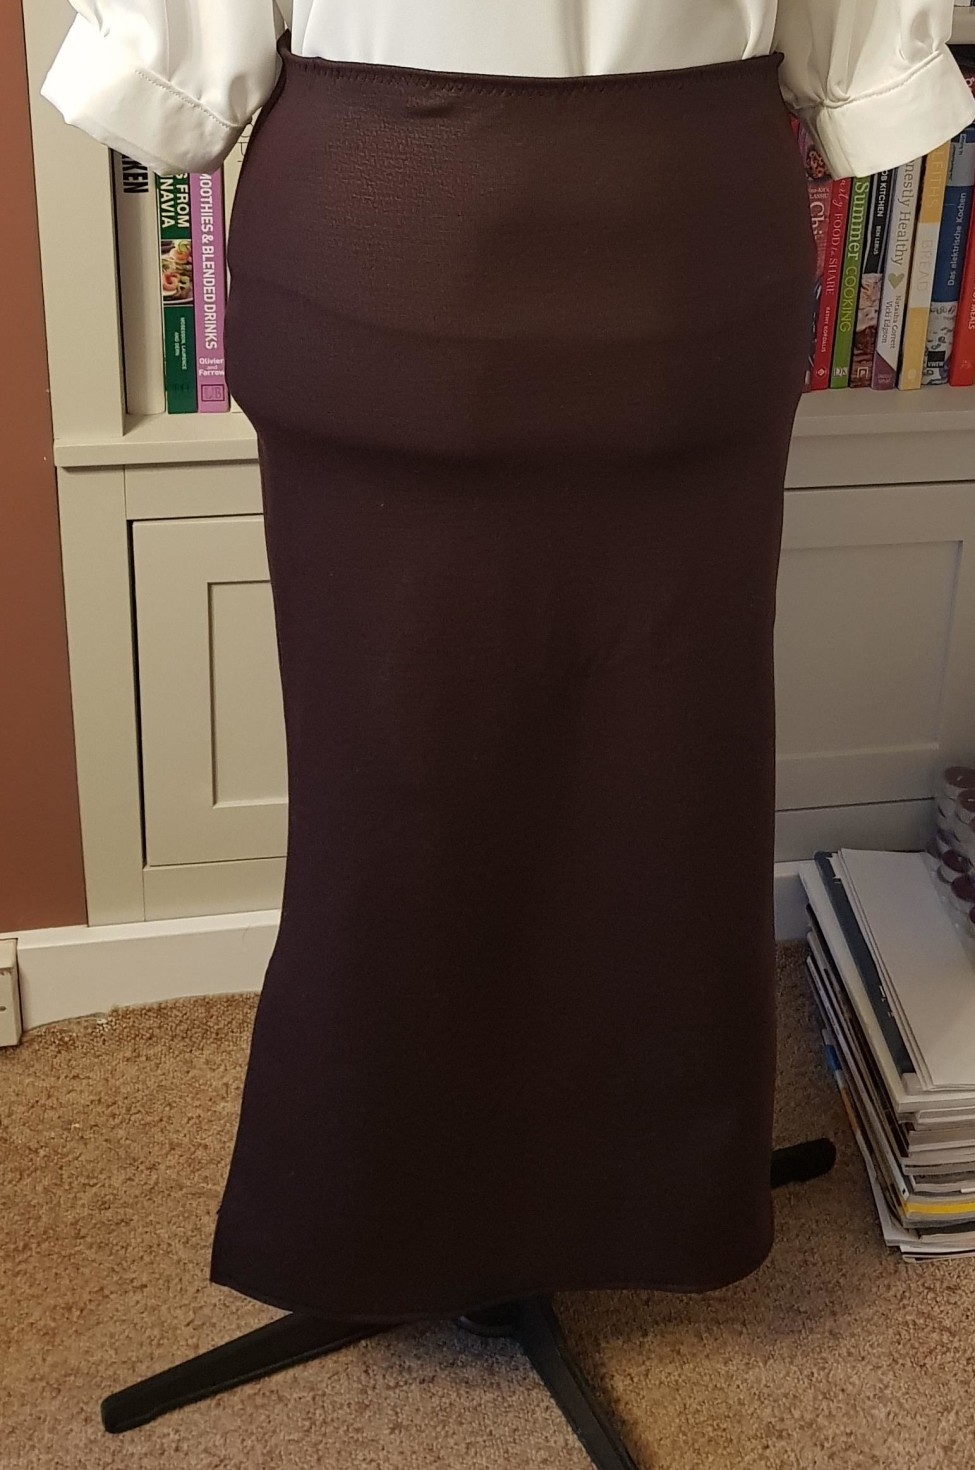 The finished product. You can see there is a lot of stretch in the fabric, perfect for someone like me who has wide hips.